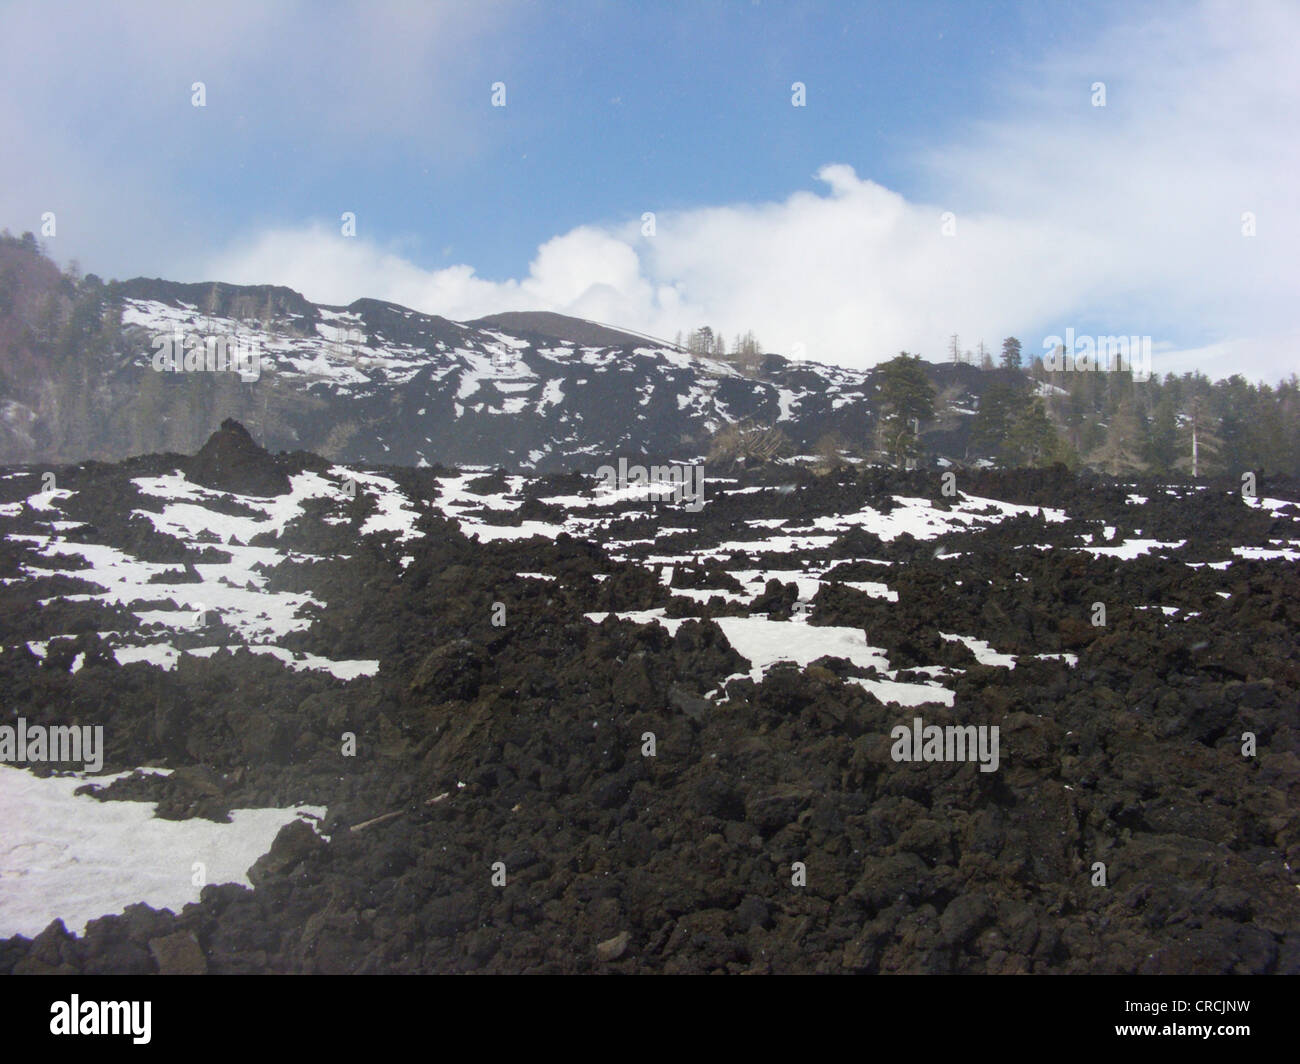 lava field with snow at the North of Mount Etna, Italy, Sicilia - Stock Image